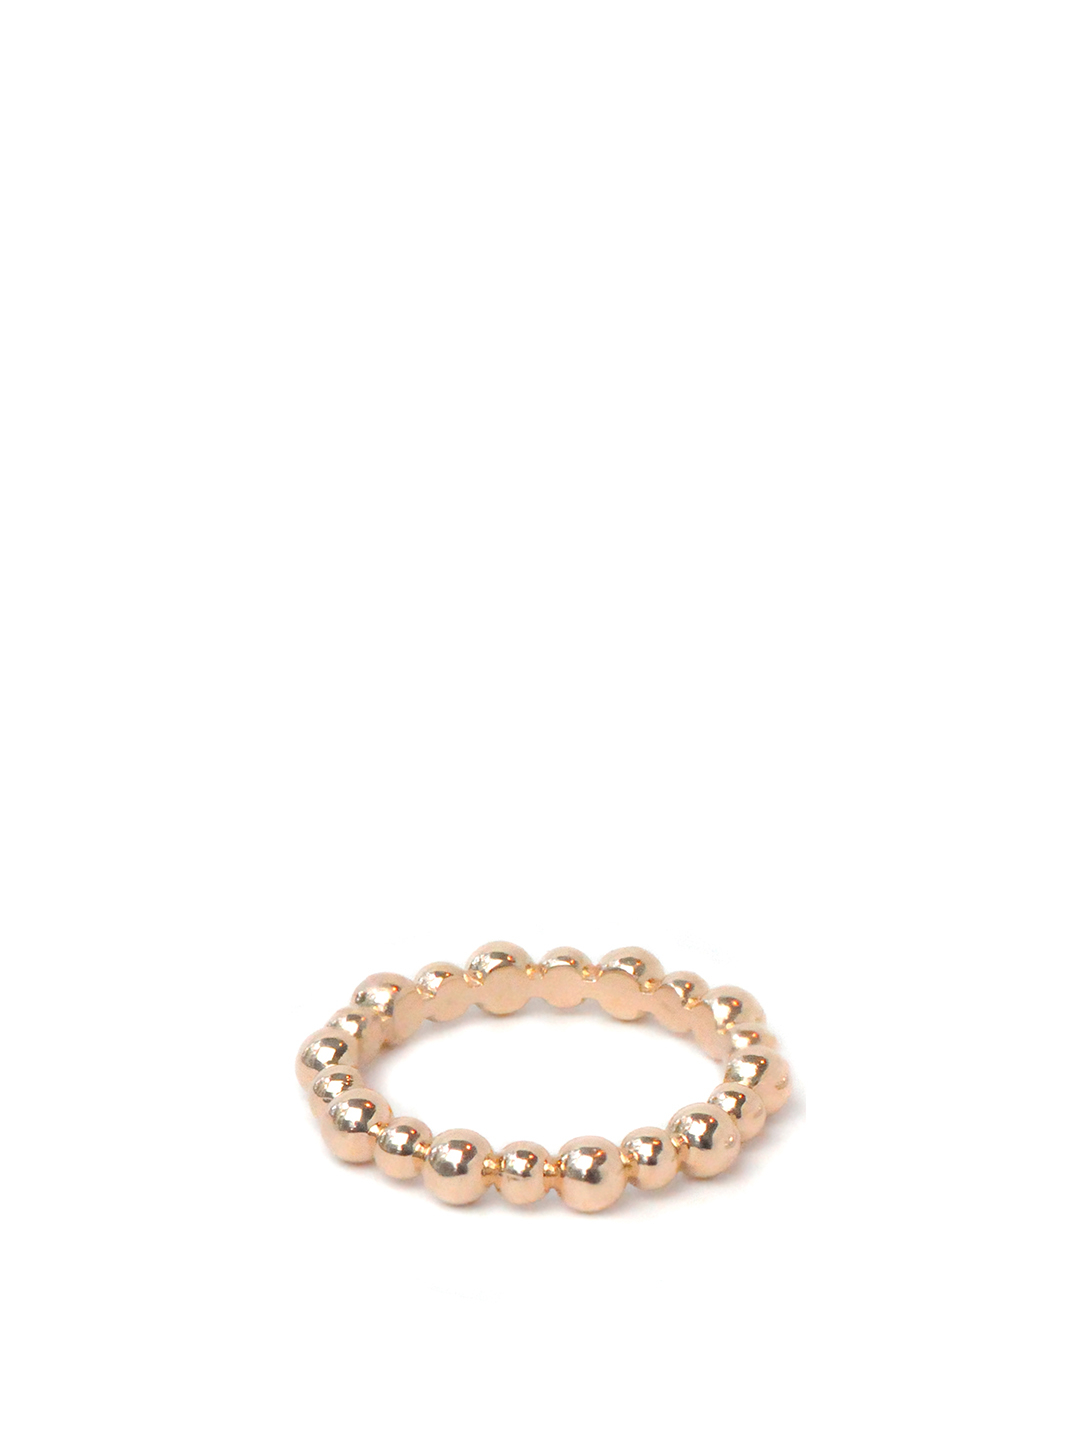 ANZIE Dew Drop 14K Rose Gold Band Women's Pink